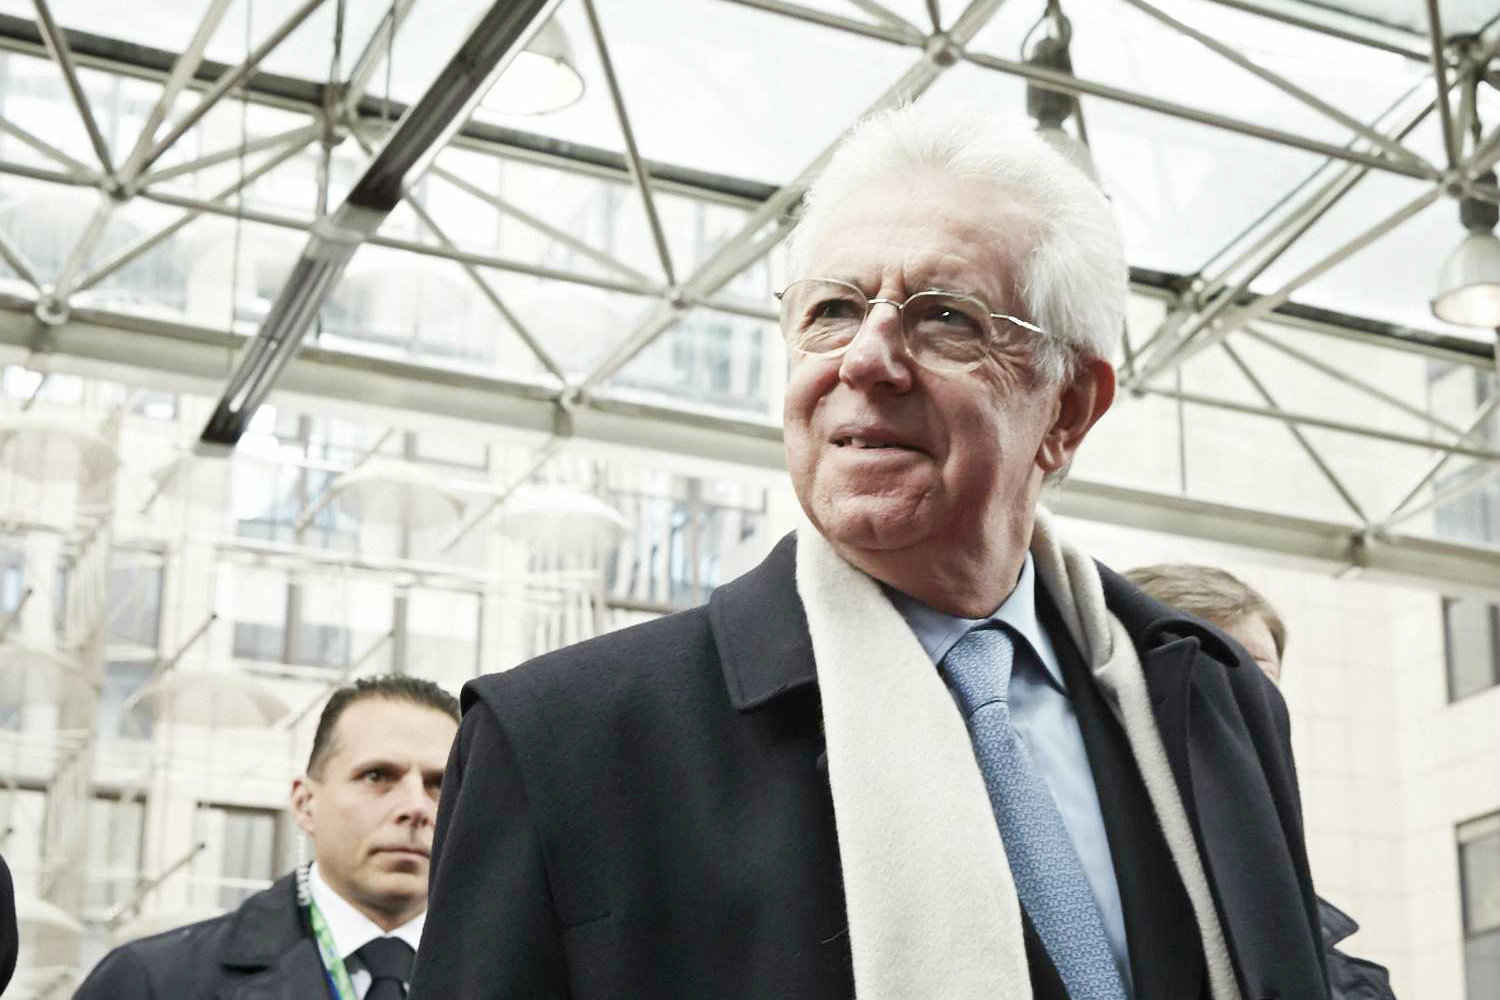 Former Italian Prime Minister Mario Monti. 2013 [The Council of the European Union]